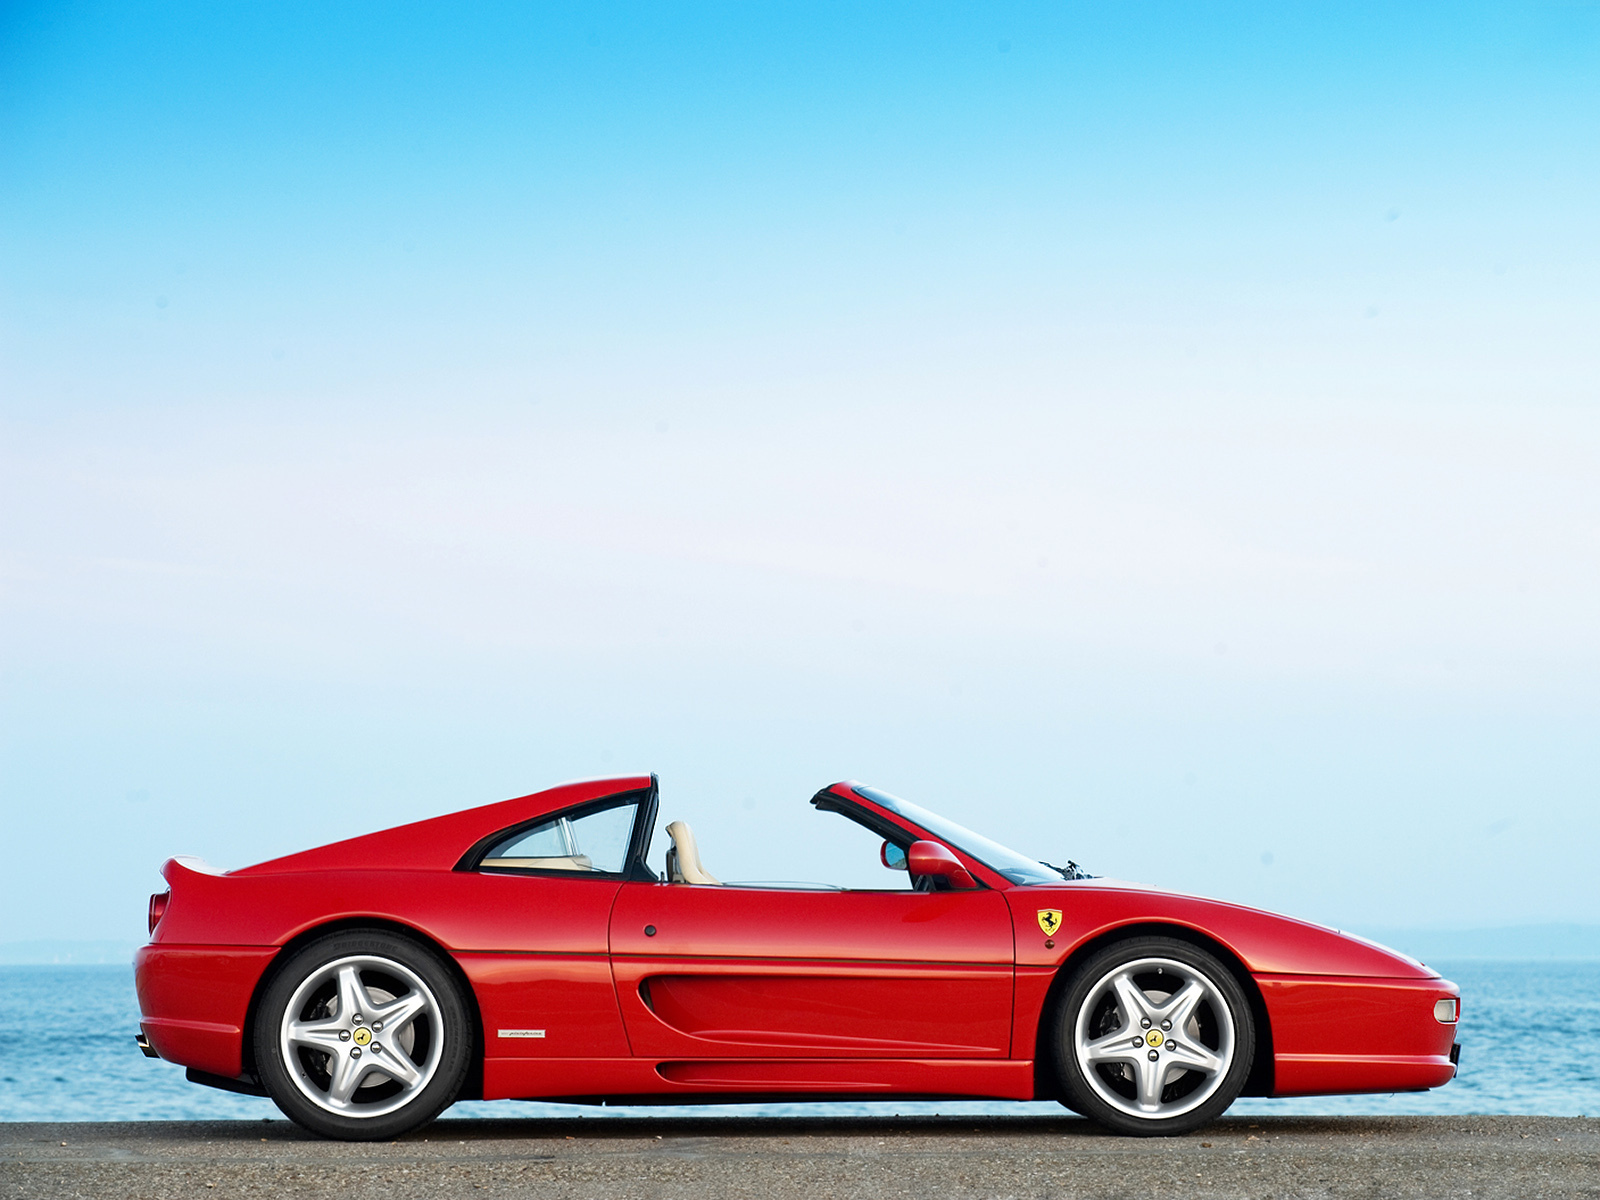 ferrari f355 spider wallpaper - photo #25